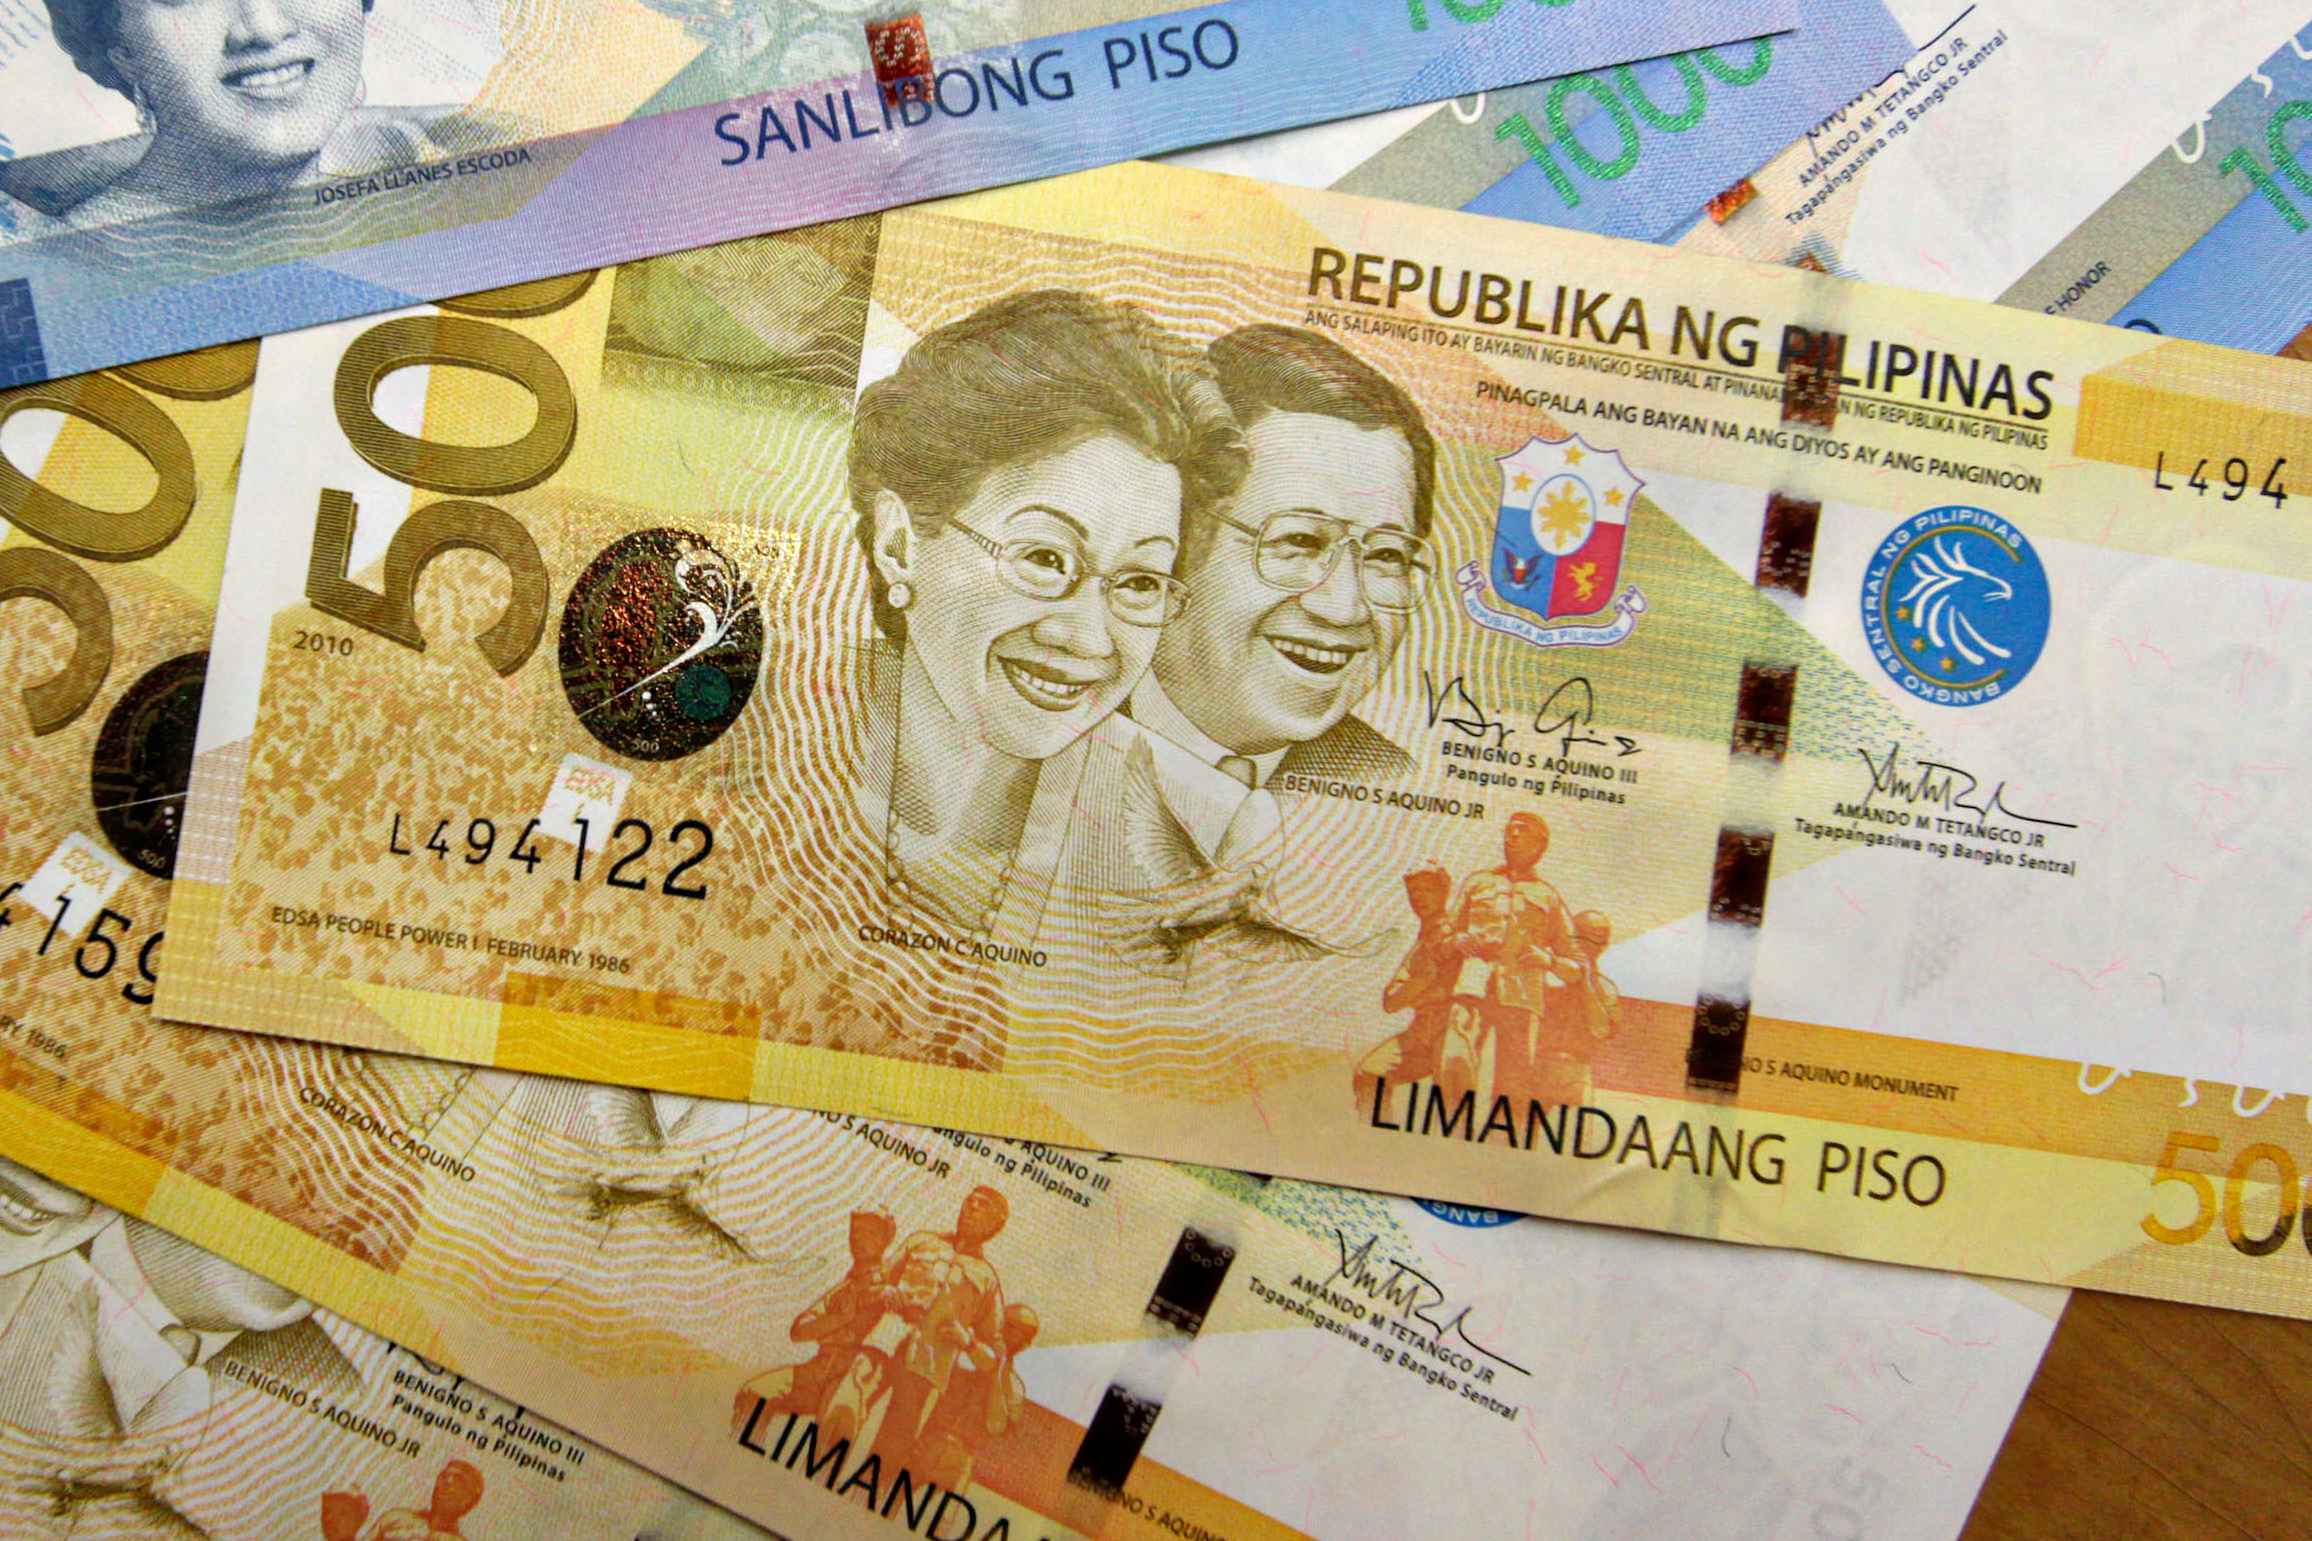 Philipine 500 and 1000 peso notes